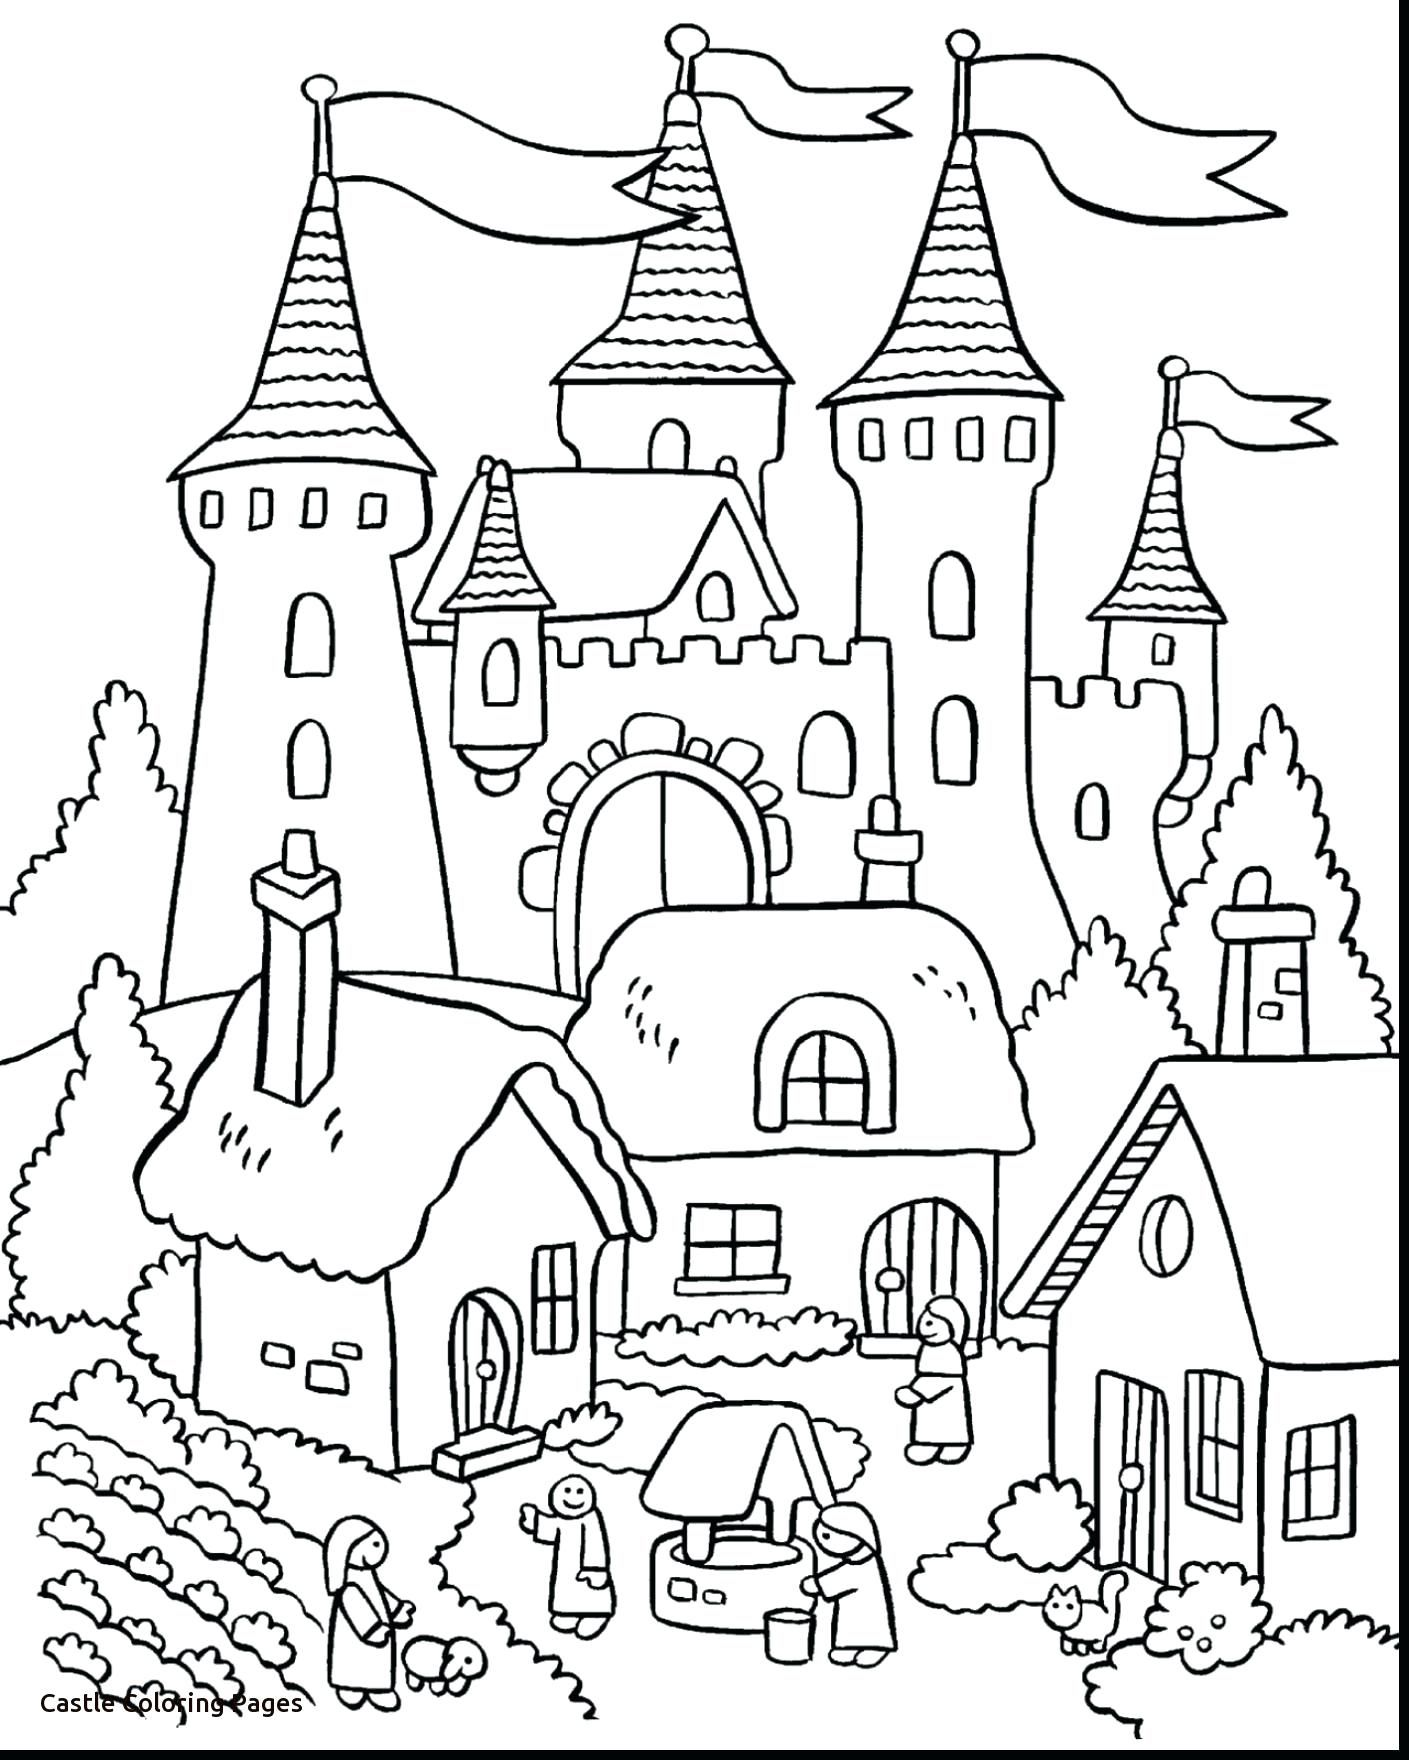 Free Castle Coloring Pages Free Elsa Coloring Pages Castle Coloring Page Princess Coloring Pages